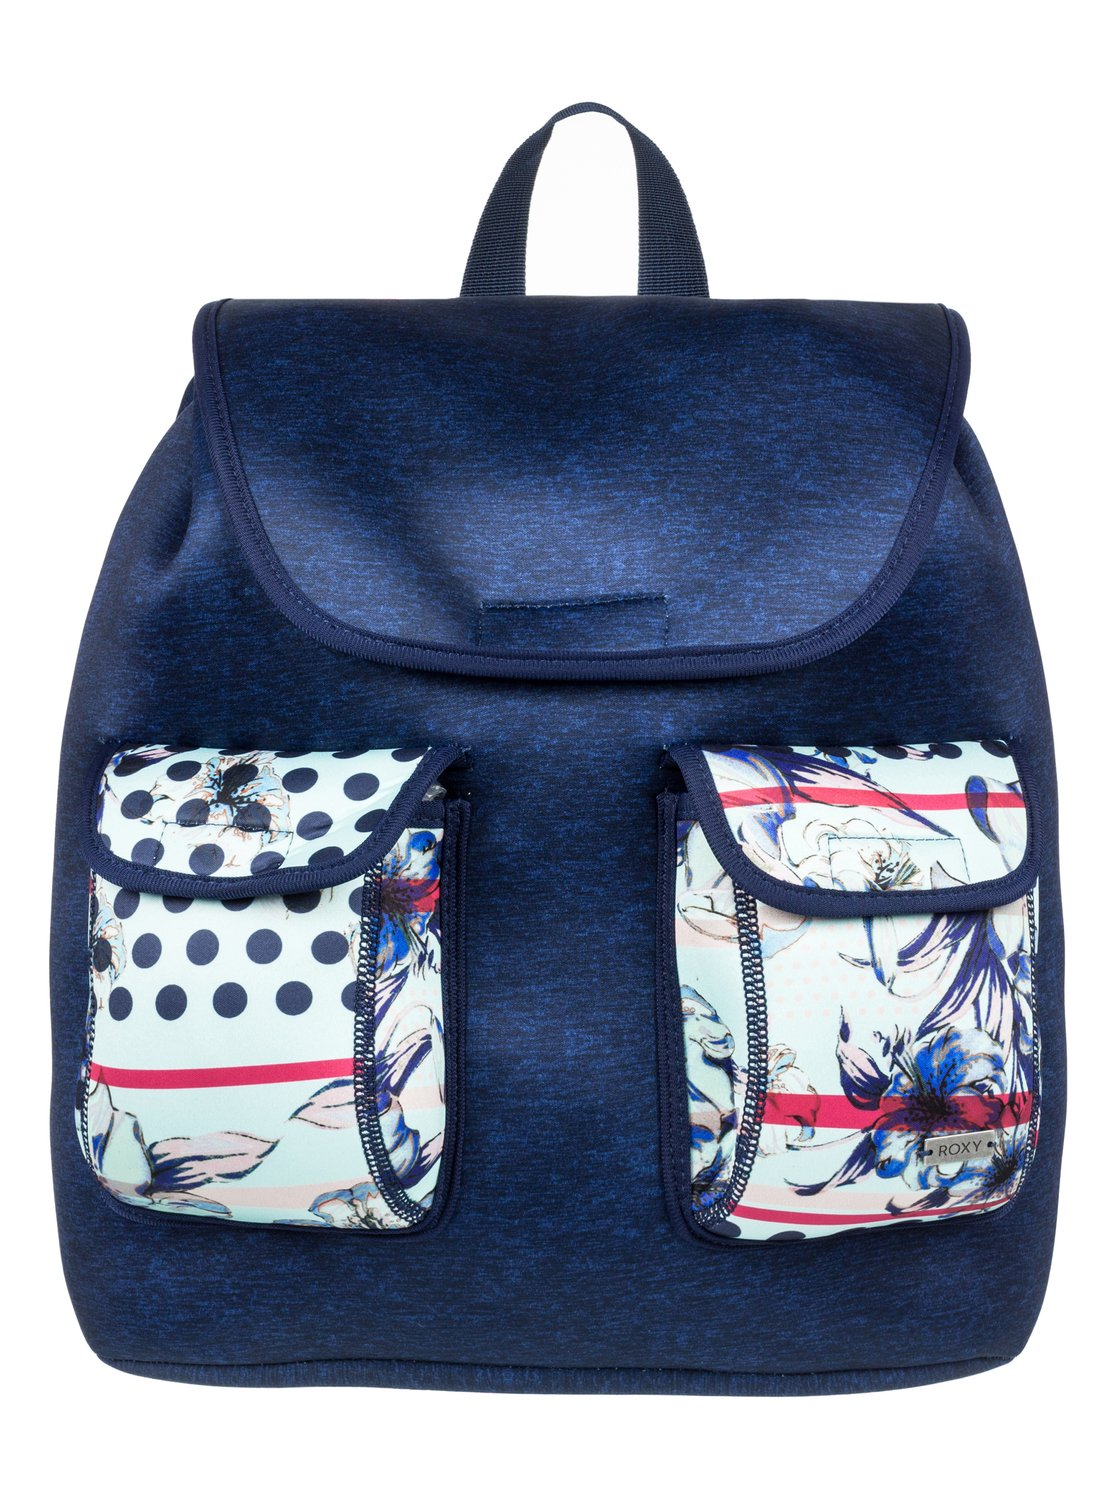 Live In This World - Mochila para Mujer Roxy